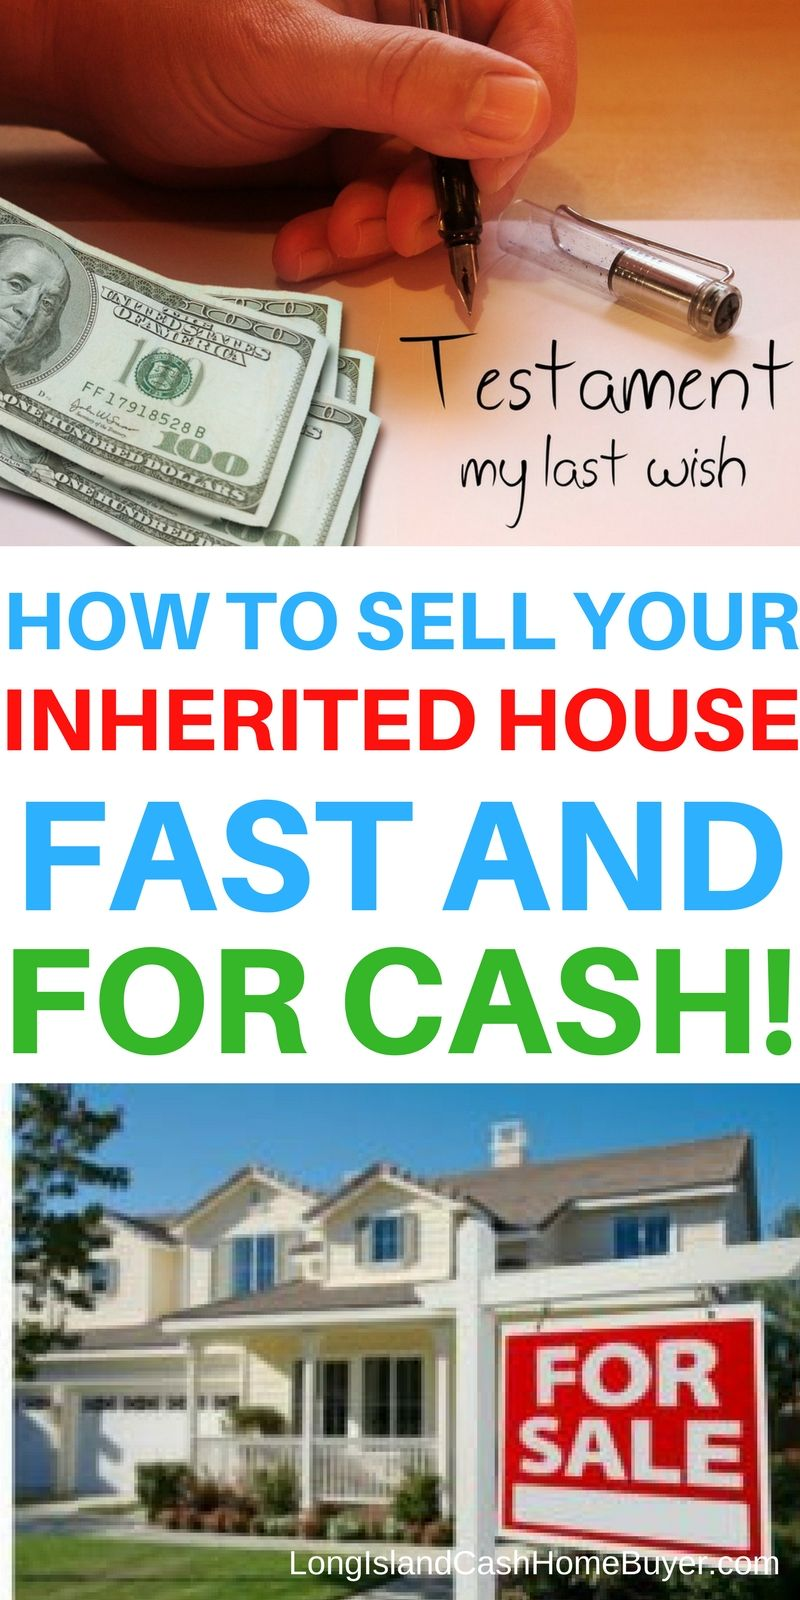 How To Sell Your Inherited House Fast And For Cash On Long Island